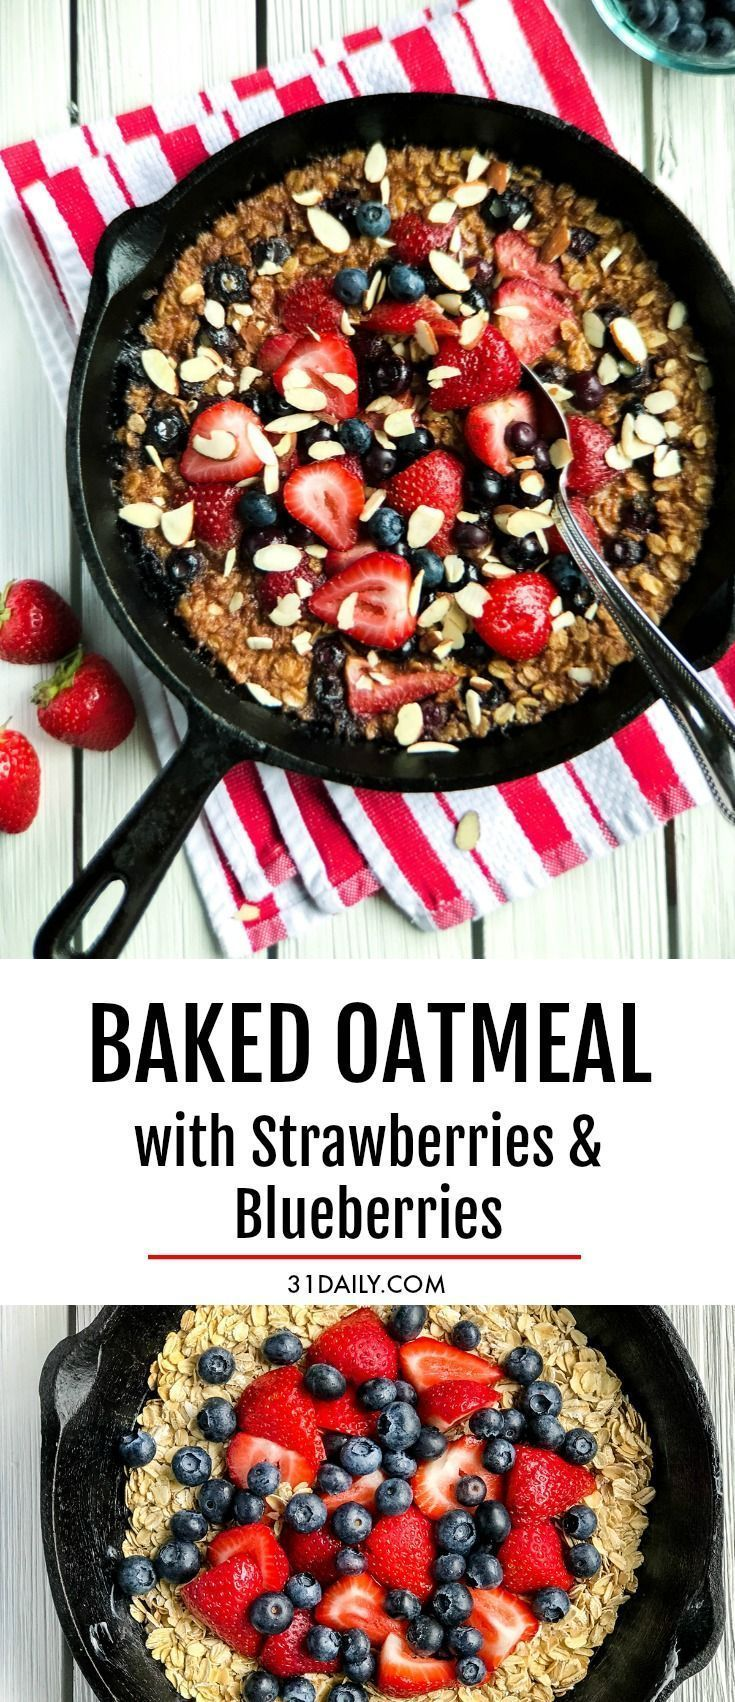 Strawberry Baked Oatmeal With Blueberries 31 Daily Rezept Essen Susses At Least